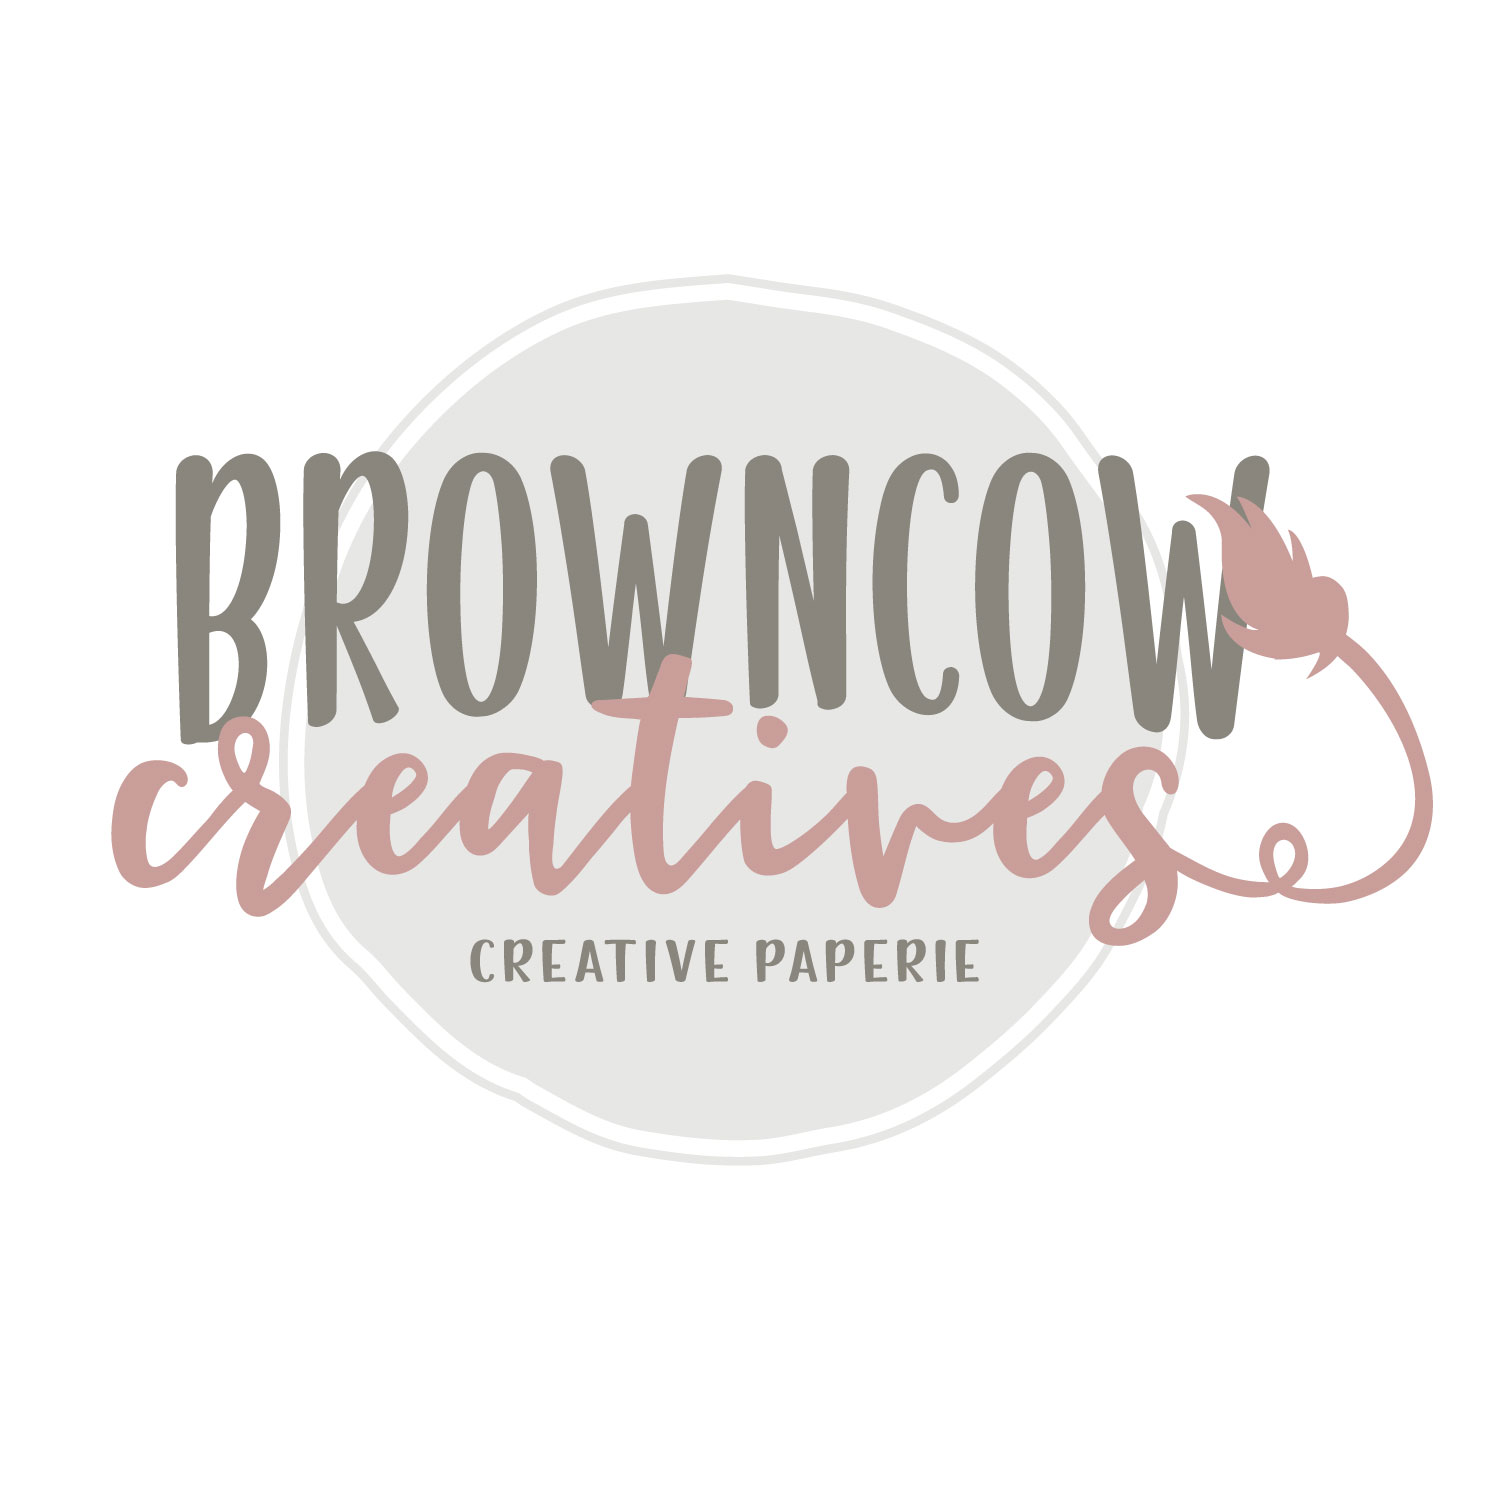 Browncowcreatives's profile picture